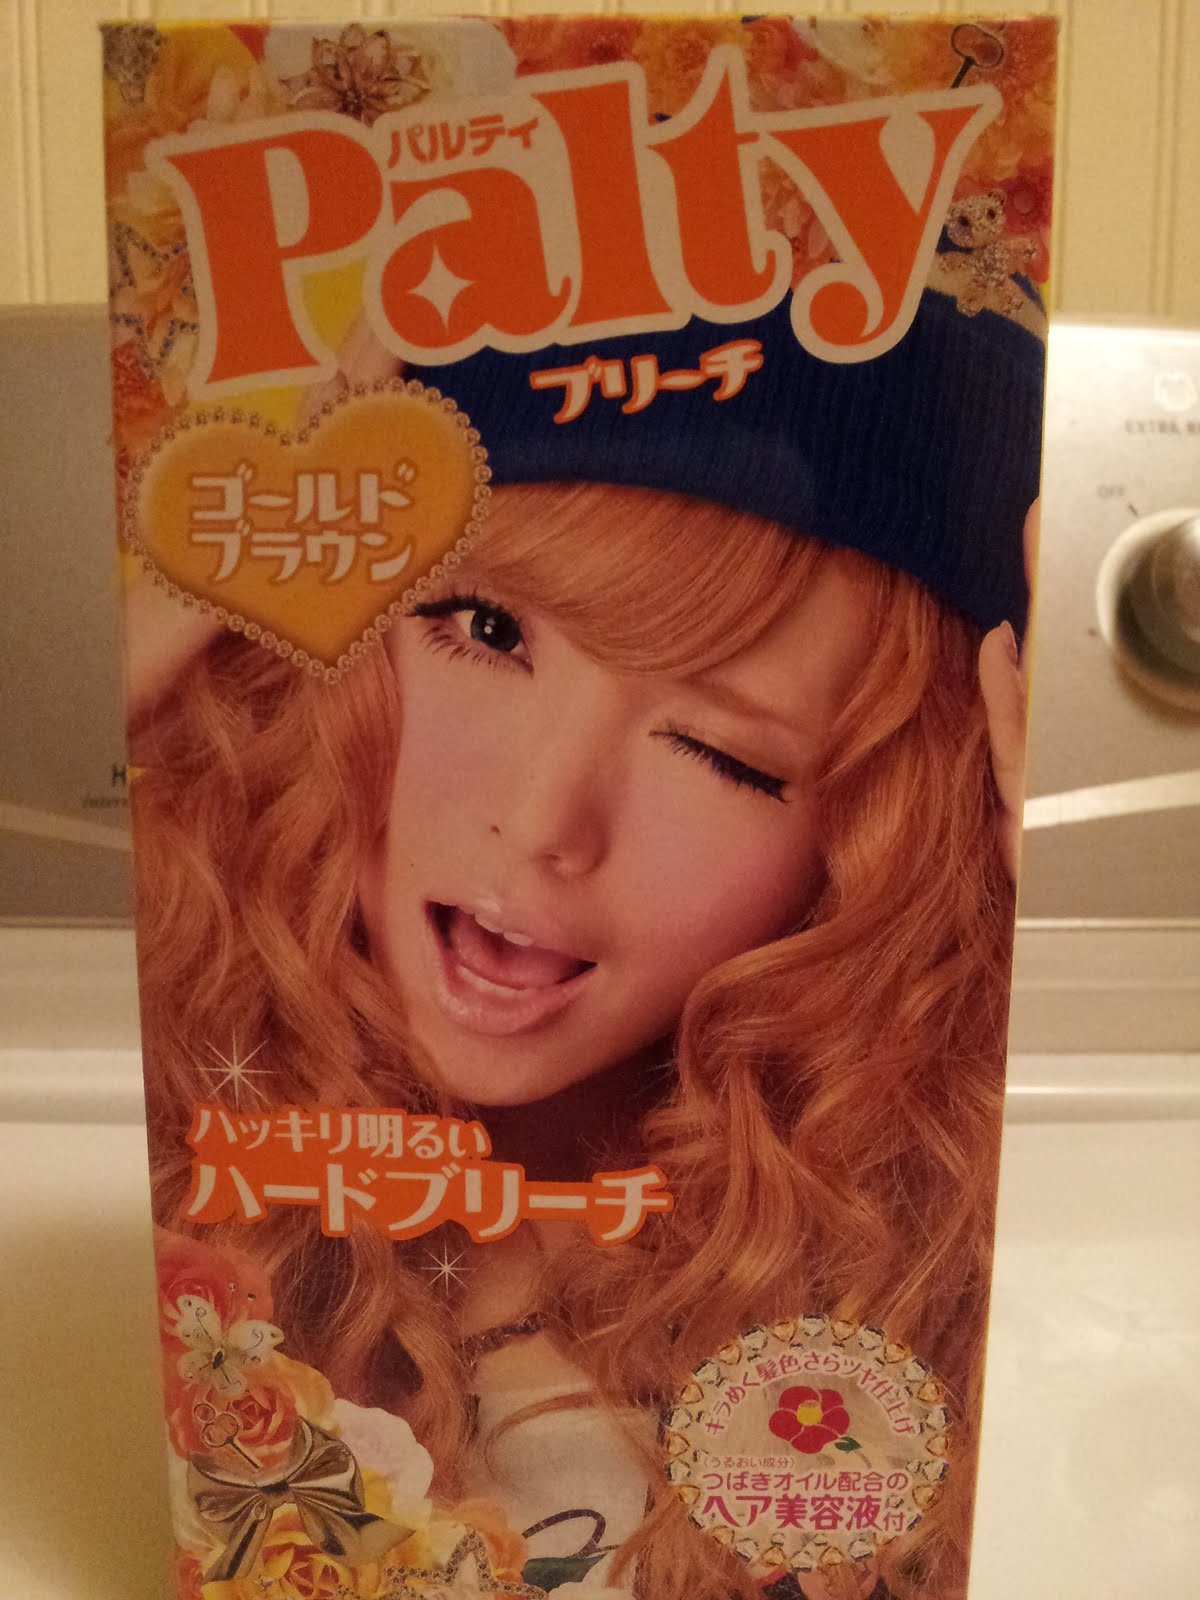 すごくかわいい Review Dariya Palty Hair Bleach Hard Gold Brown